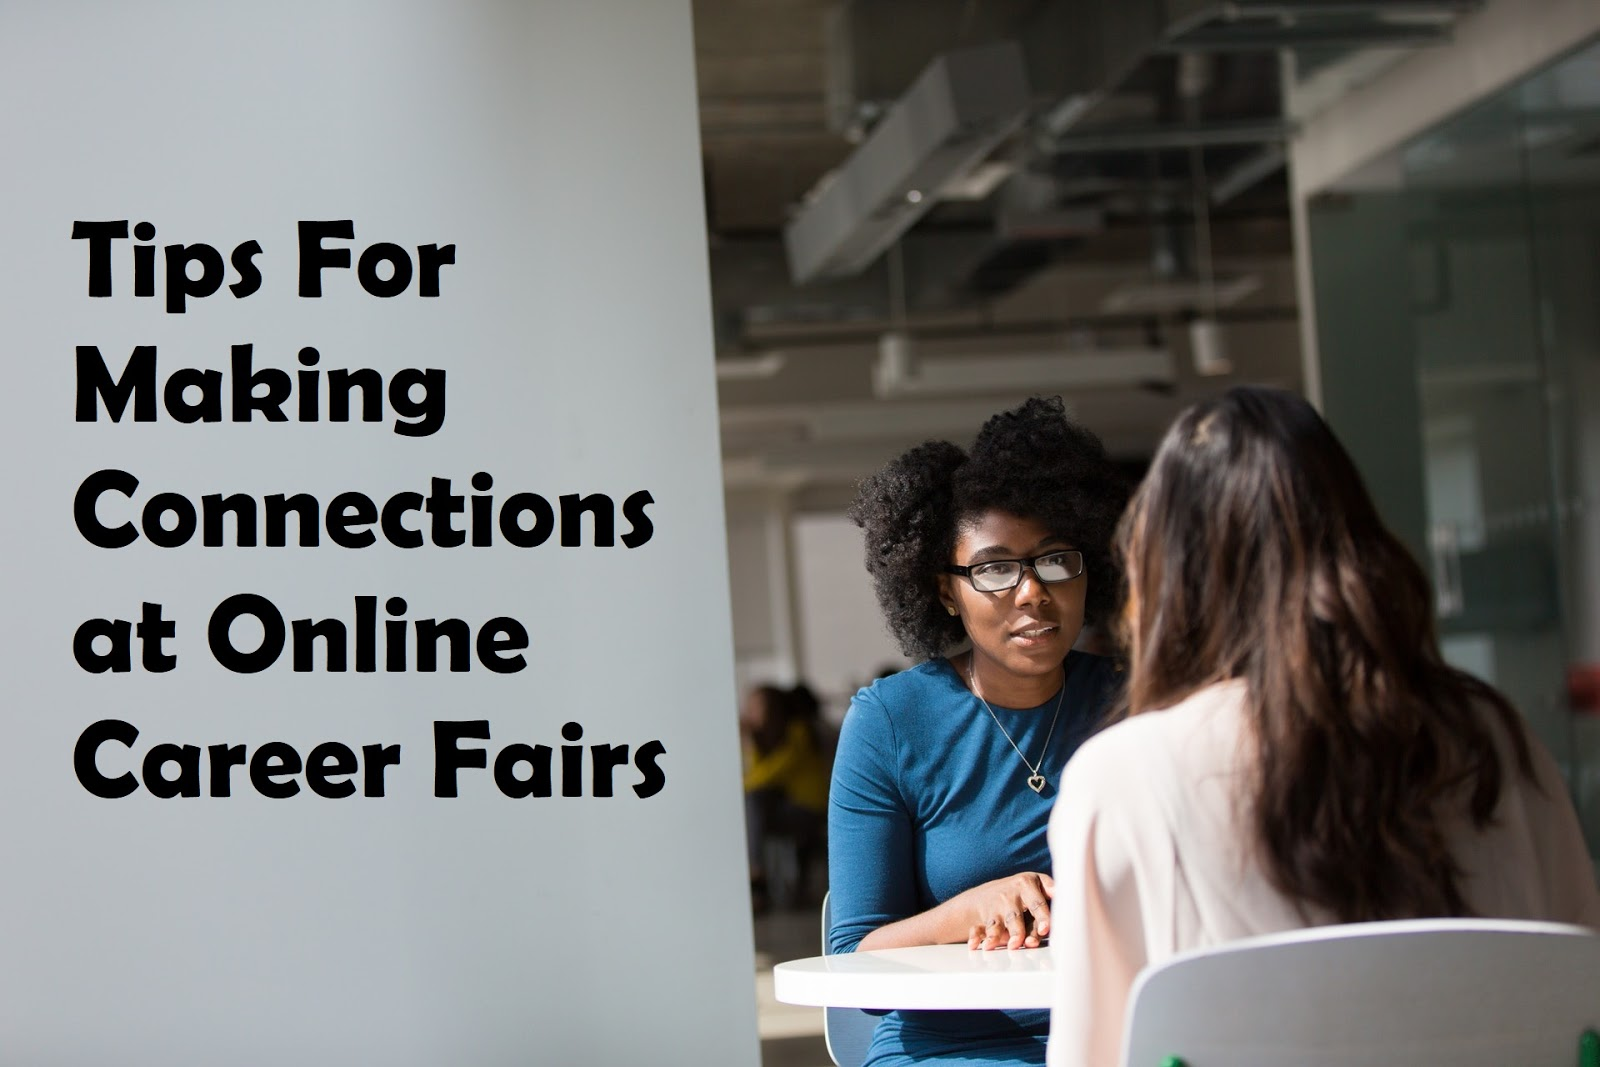 Tips for Making Connections at Virtual Career Fairs